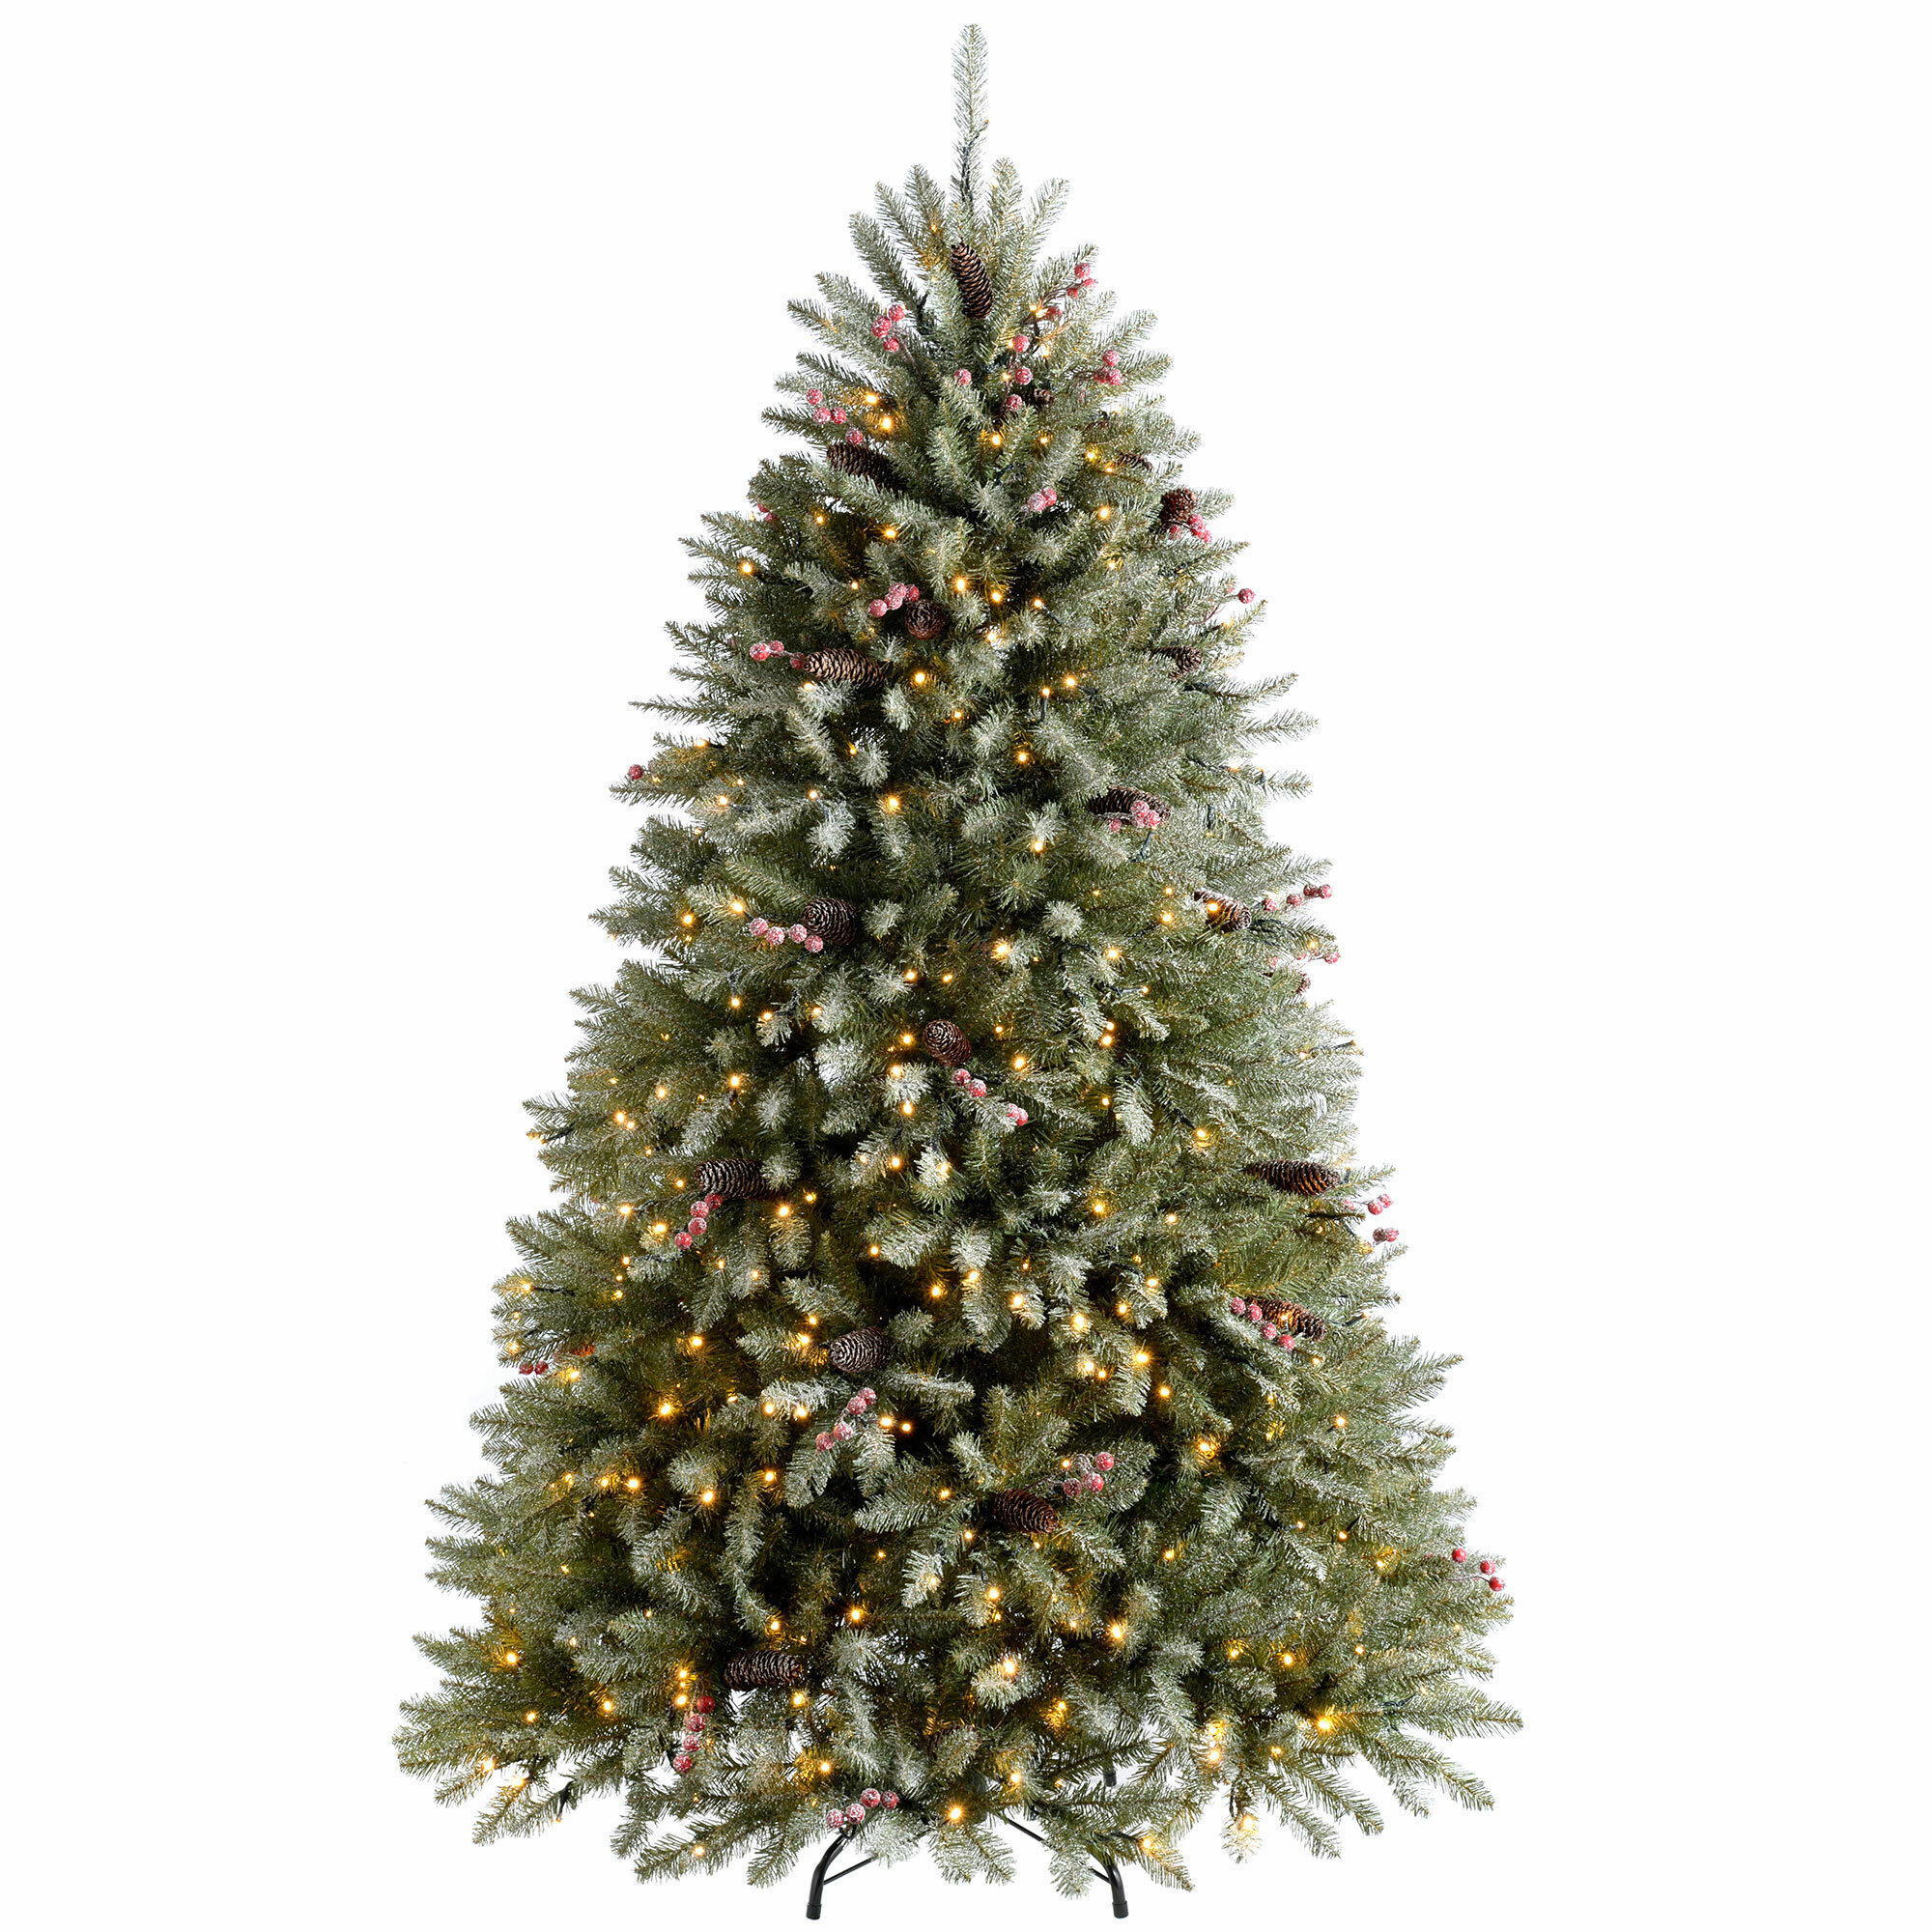 Christmas Tree Snow.Decorated Snow 7ft Green Spruce Artificial Christmas Tree With 600 Clear White Lights With Stand